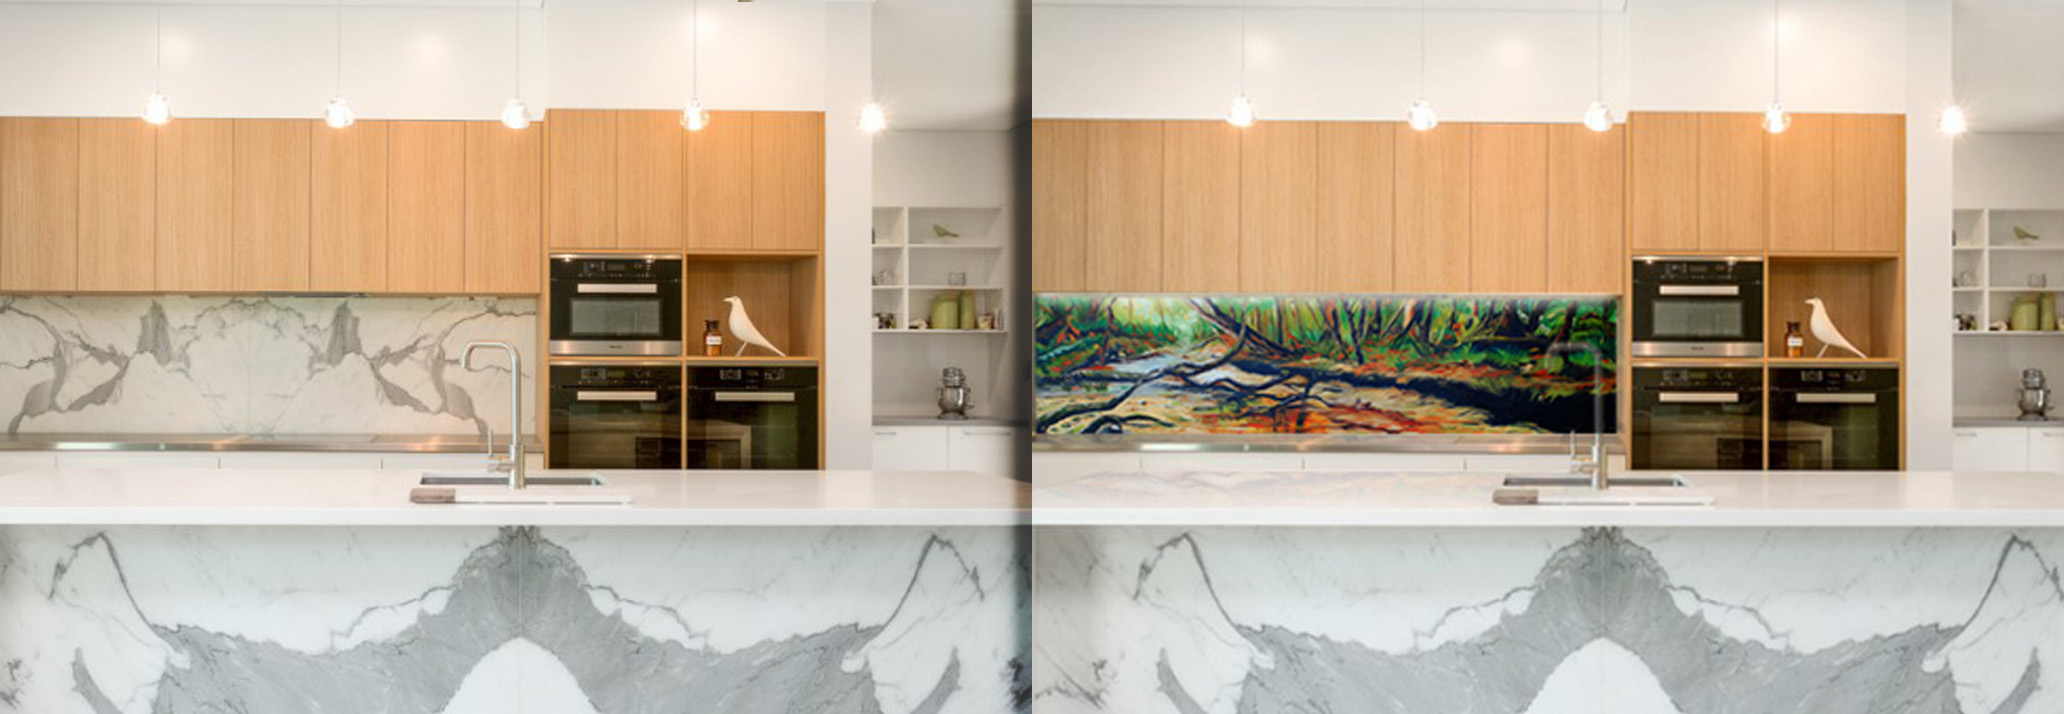 Tailored Artworks - Real Art Kitchen Splashbacks 8